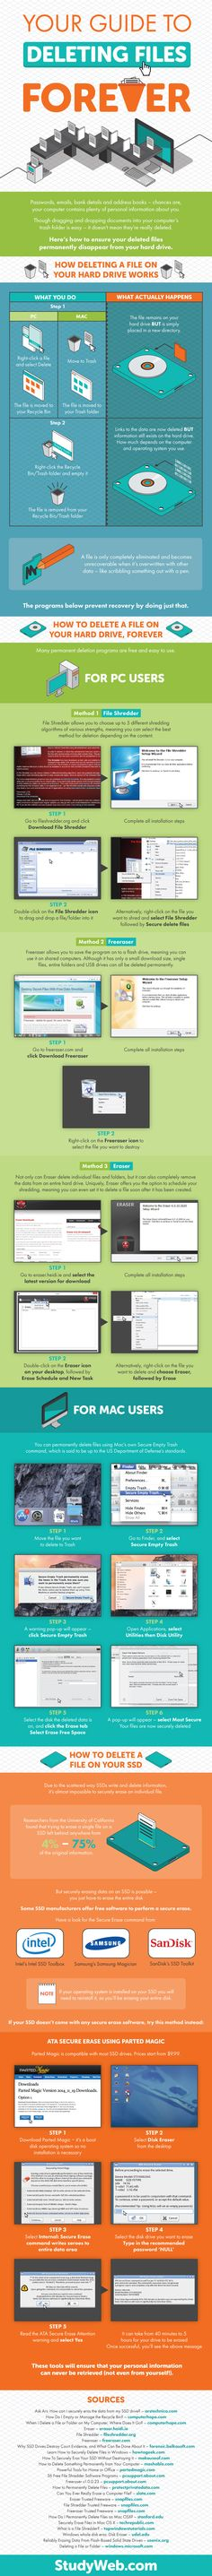 Your Guide to Deleting Files Forever - infographic Computer Hard Drive Medical Technology, Computer Technology, Computer Programming, Computer Science, Technology News, Web Design, Computer Help, Computer Tips, Computer Projects